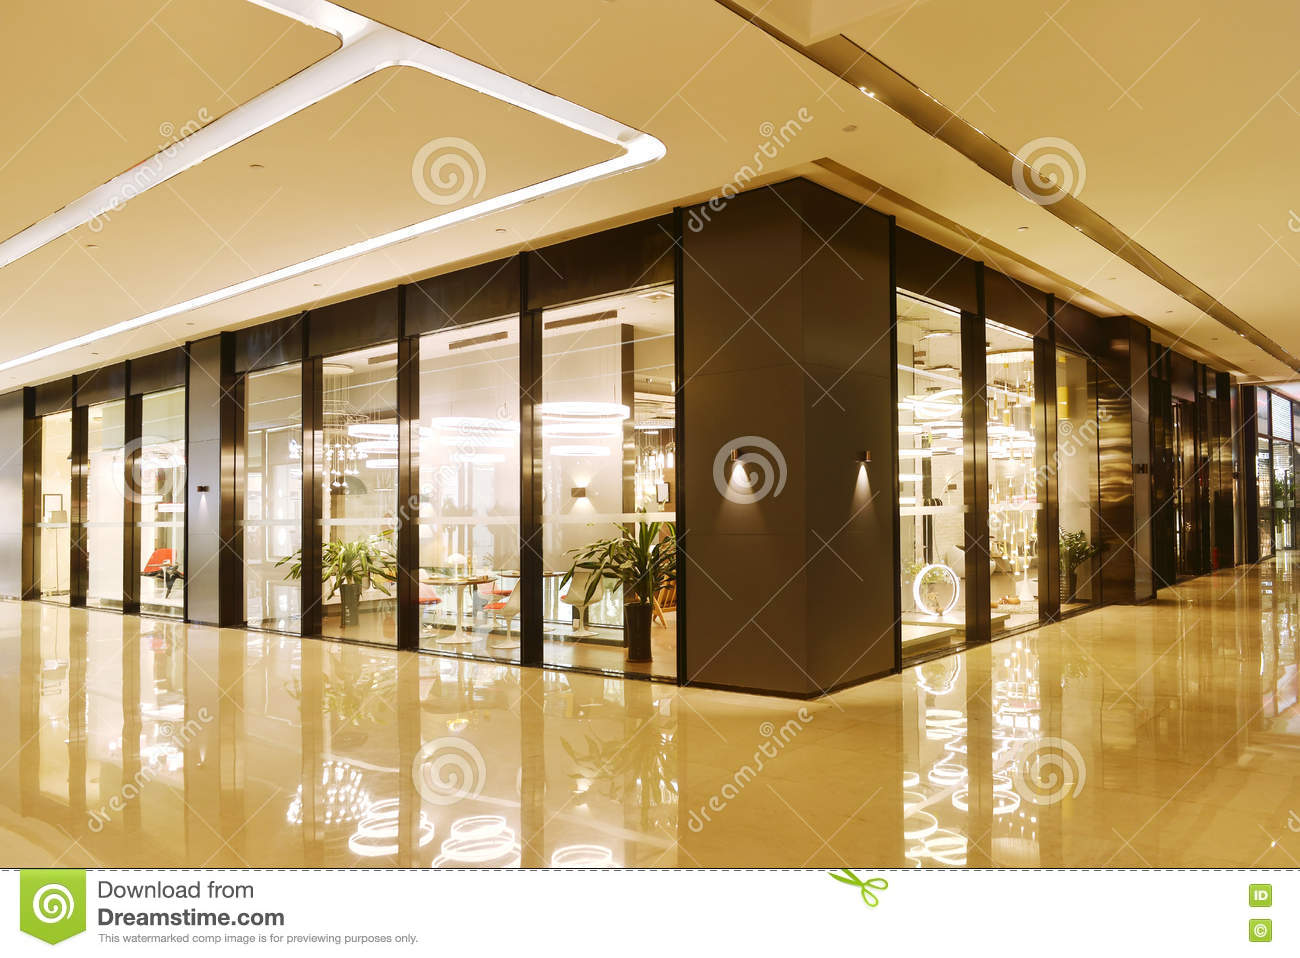 Lobby and shop in commercial building